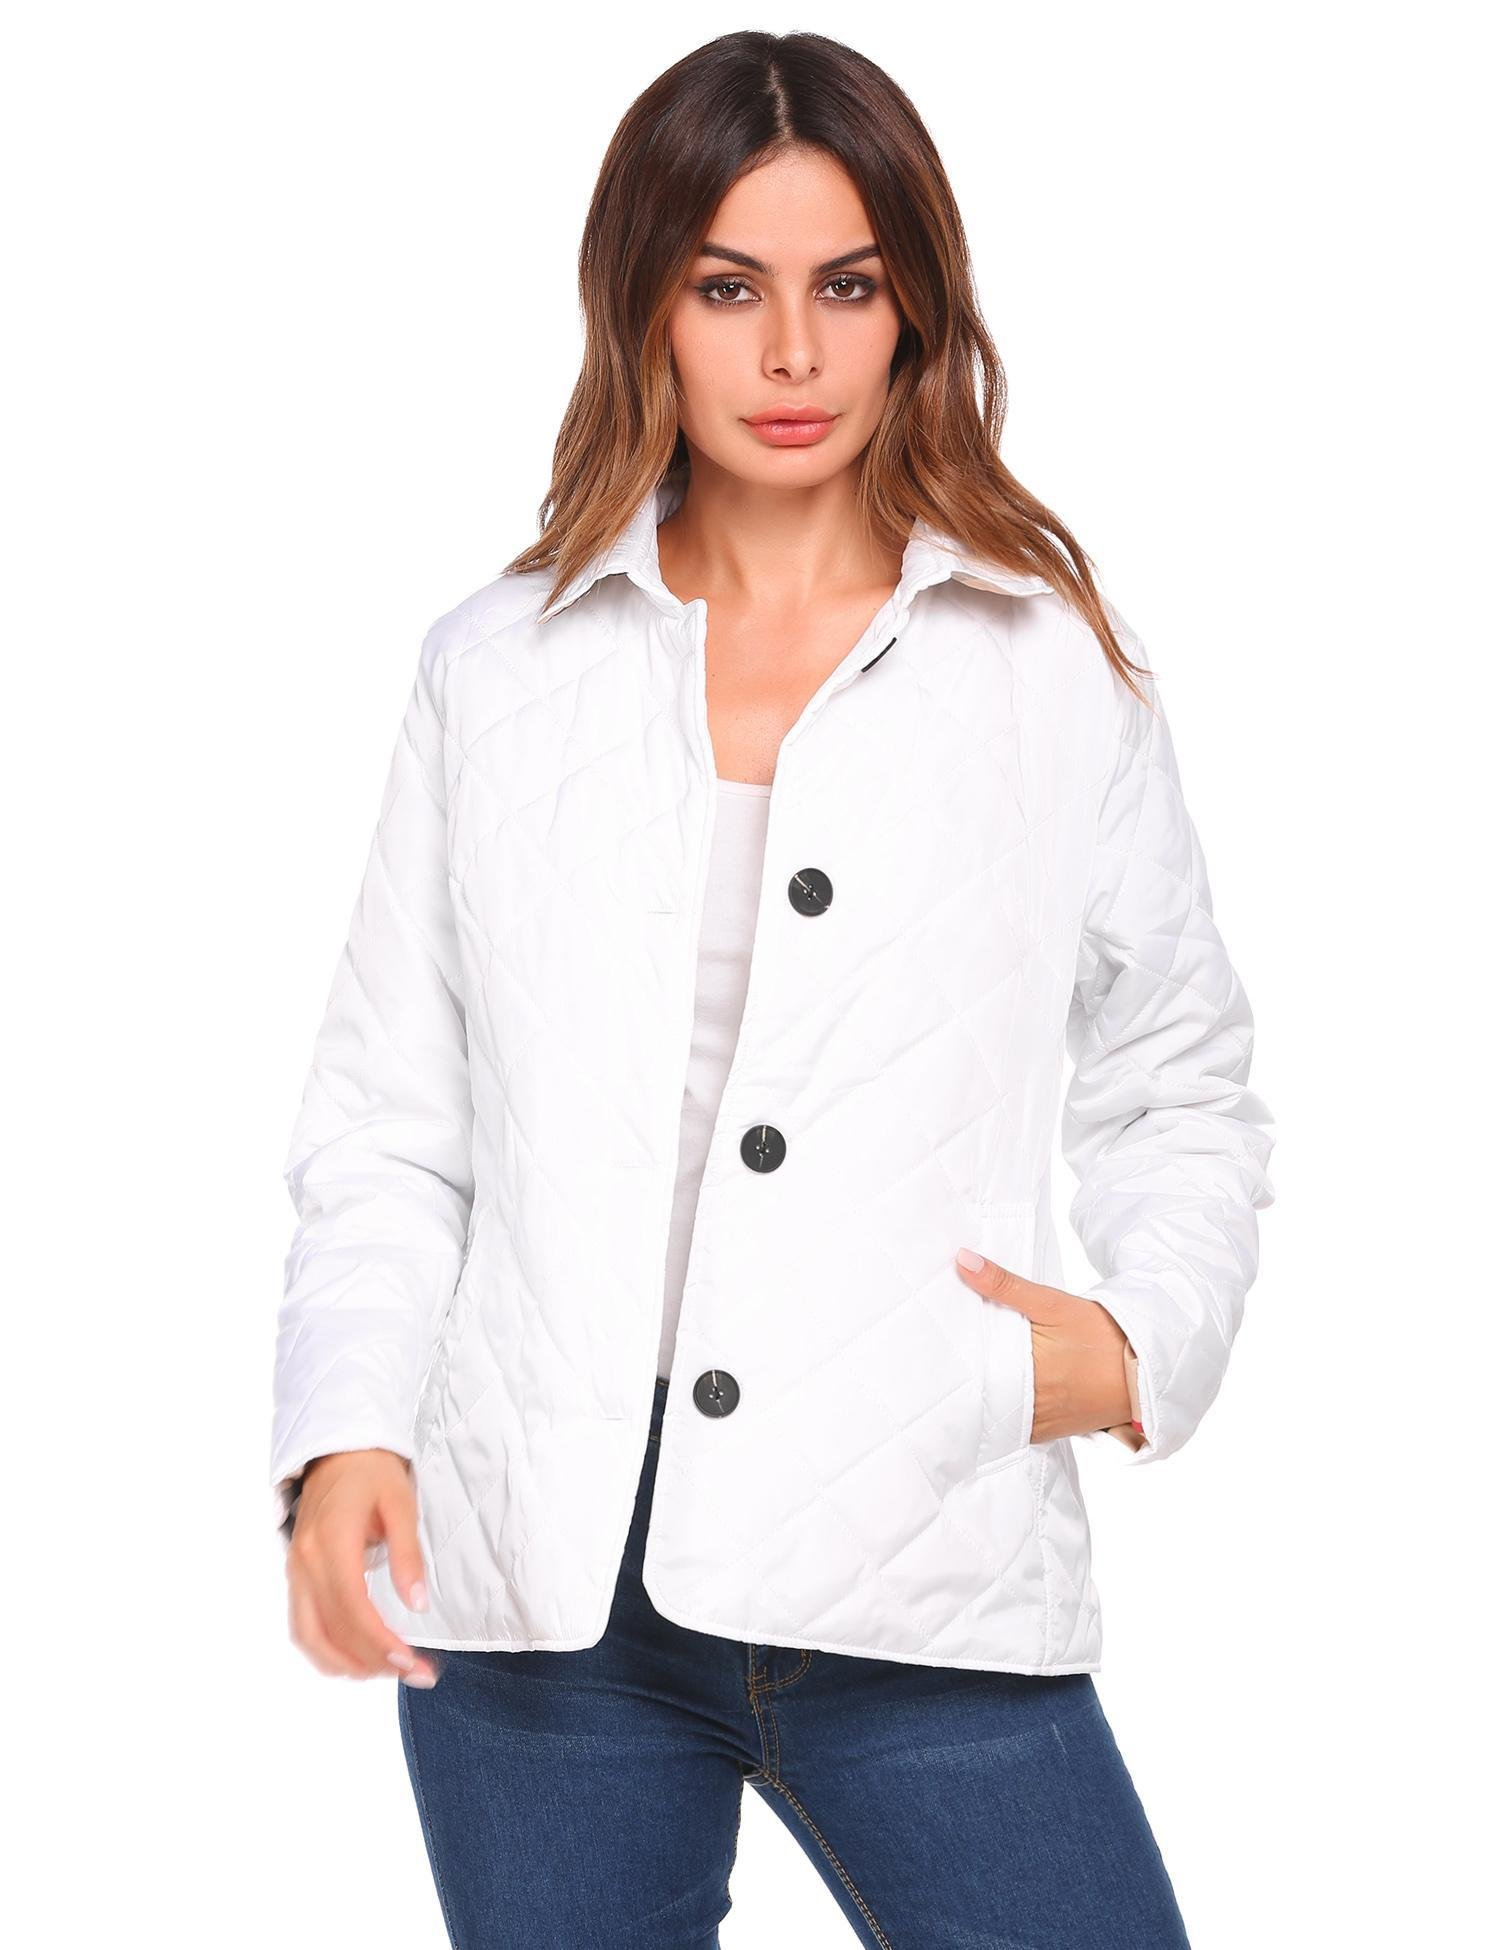 Soteer Women's Diamond Quilted Jacket Stand Collar Button End with Pocket Coat White S